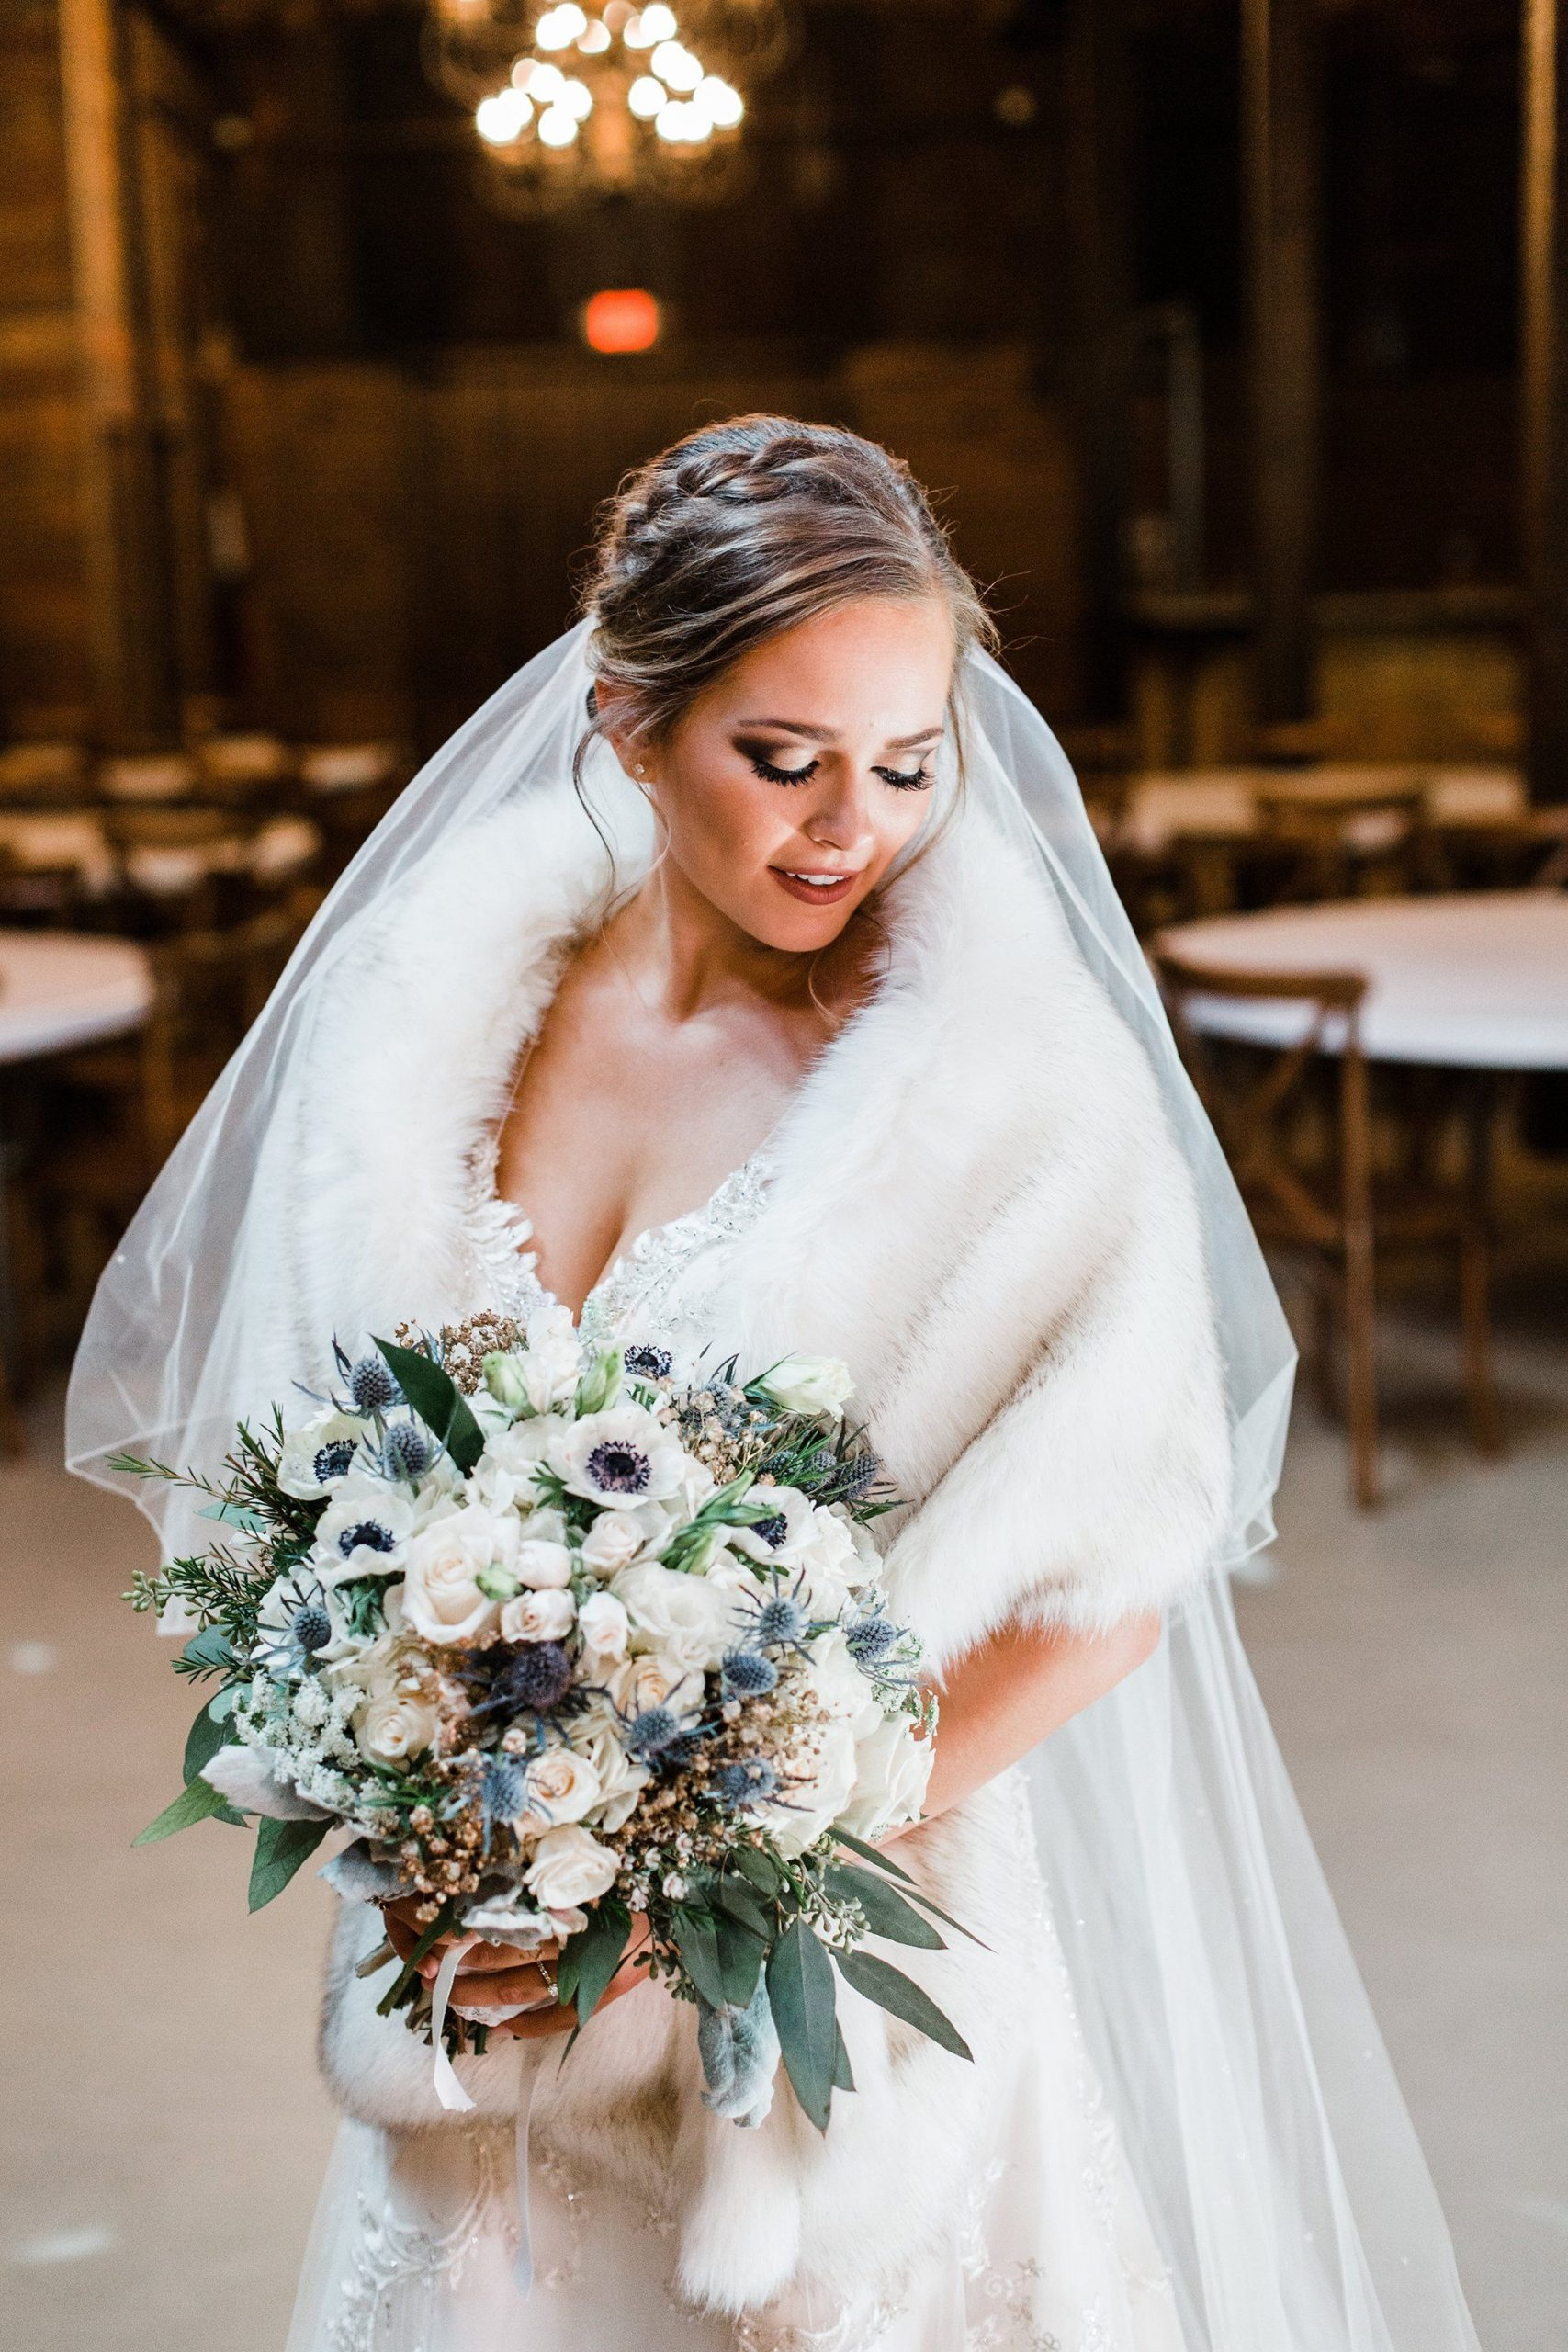 ivory shawl for whire wedding dress for winter wedding ideas